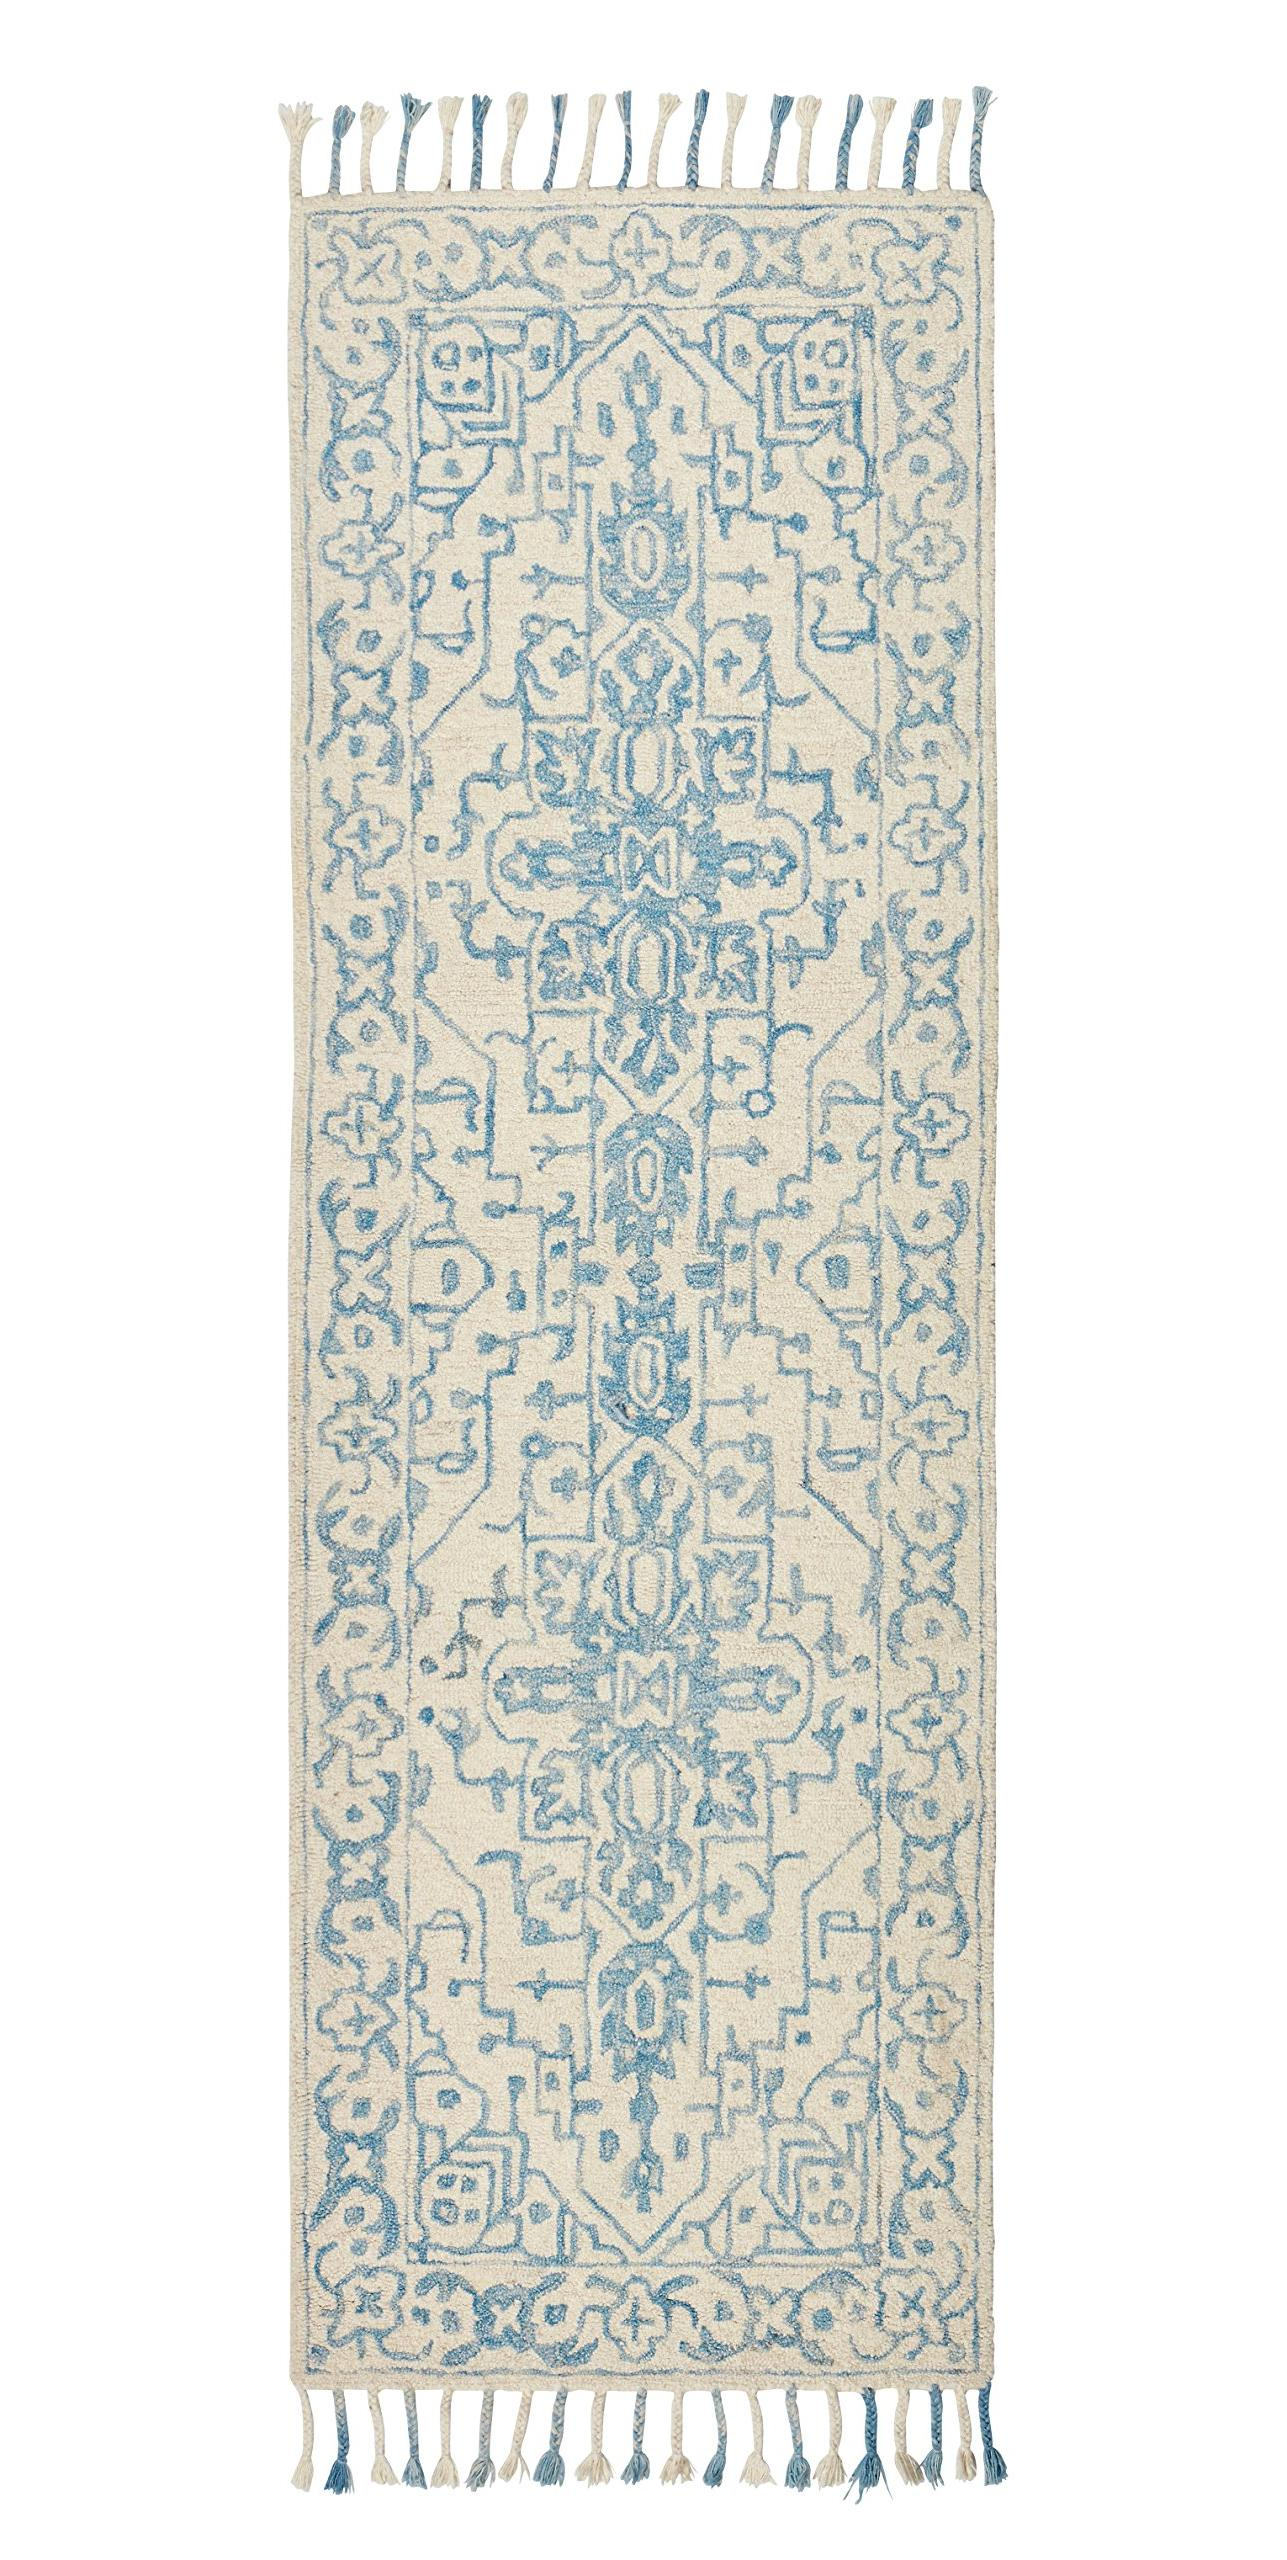 "Stone & Beam New England Tassled Wool Runner, 2'6""x8', Blue"